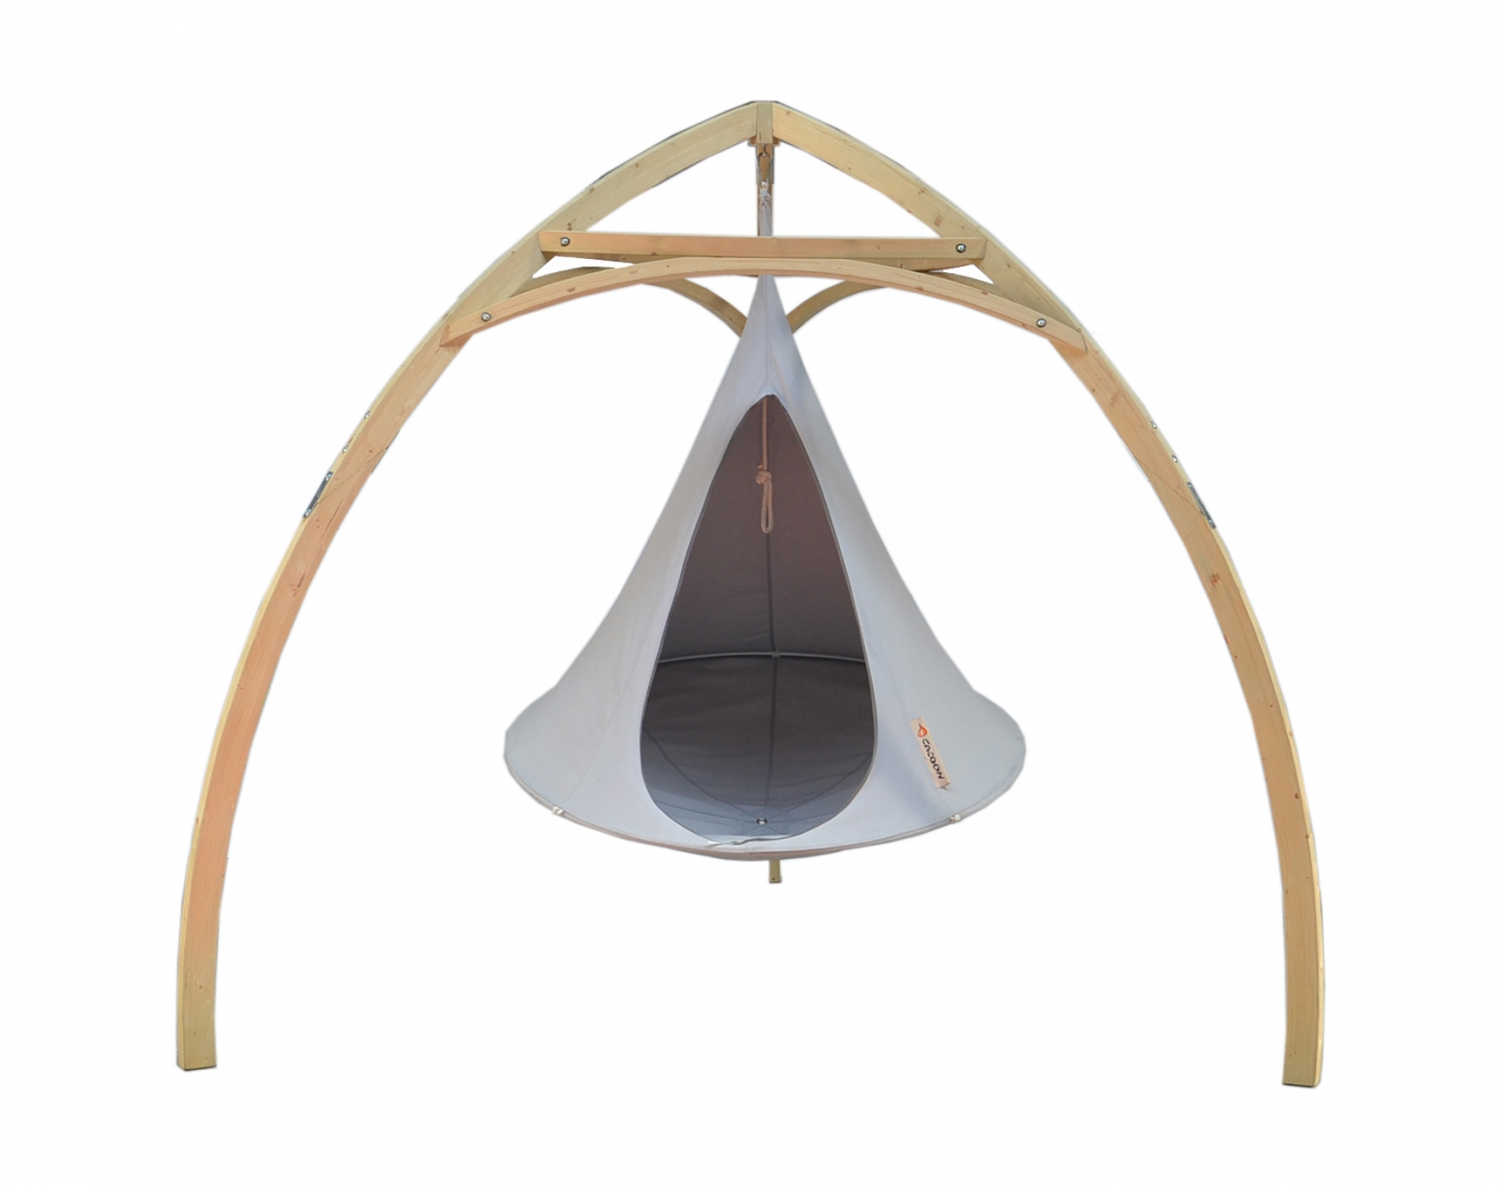 Cacoon Tripod Wood Frame For Hanging Tent Patio Life